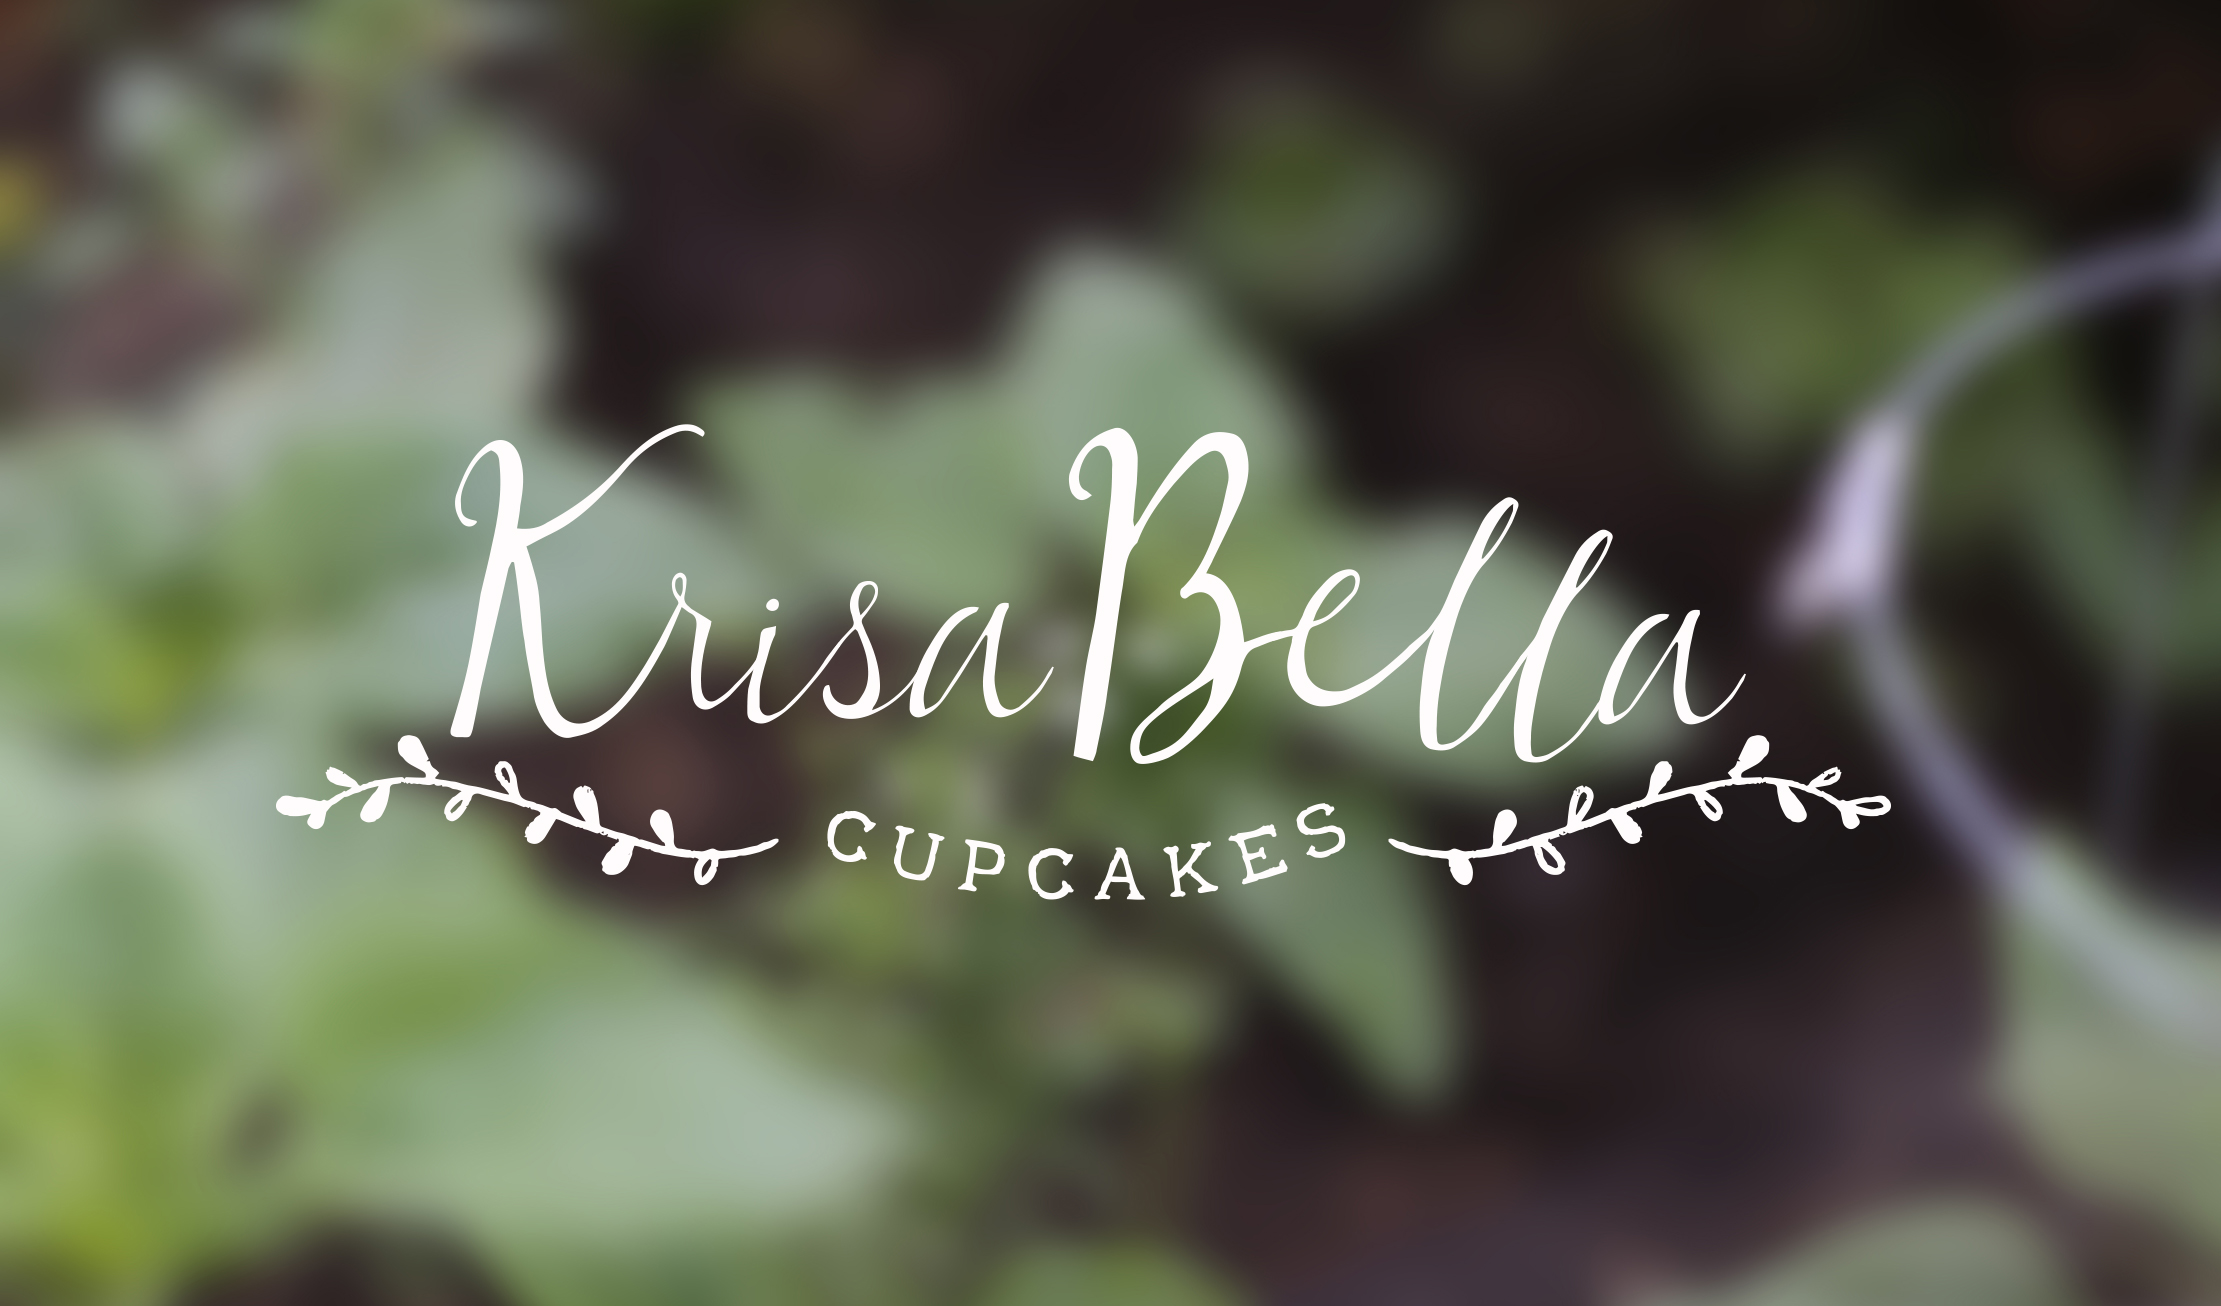 Krisa Bella Cupcakes Branding by Just Make Things